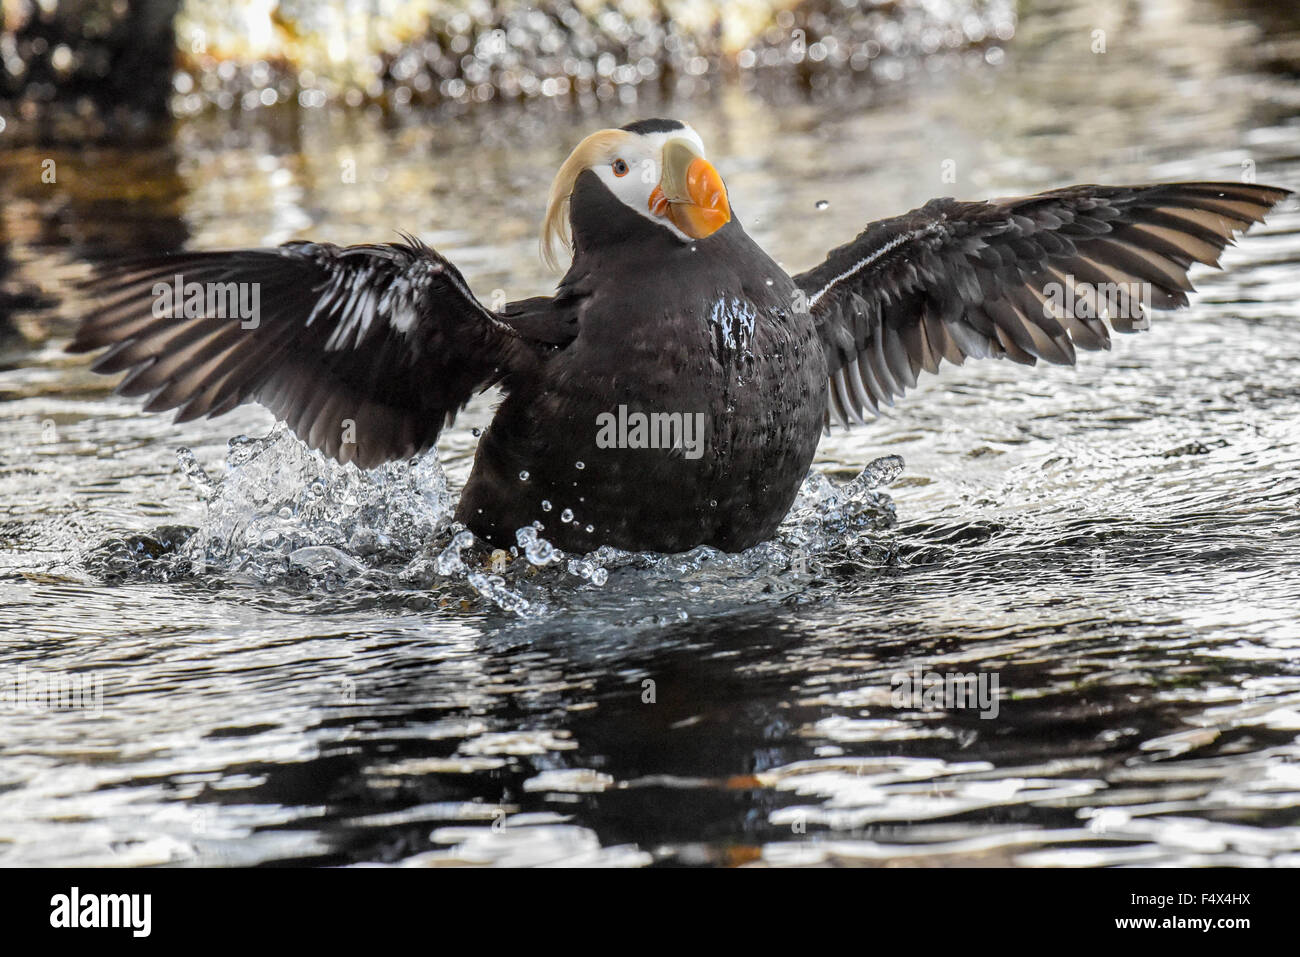 A tufted puffin / crested puffin with summer plumage / Fratercula with an orange beak splashes in Alaska | Seward - Stock Image